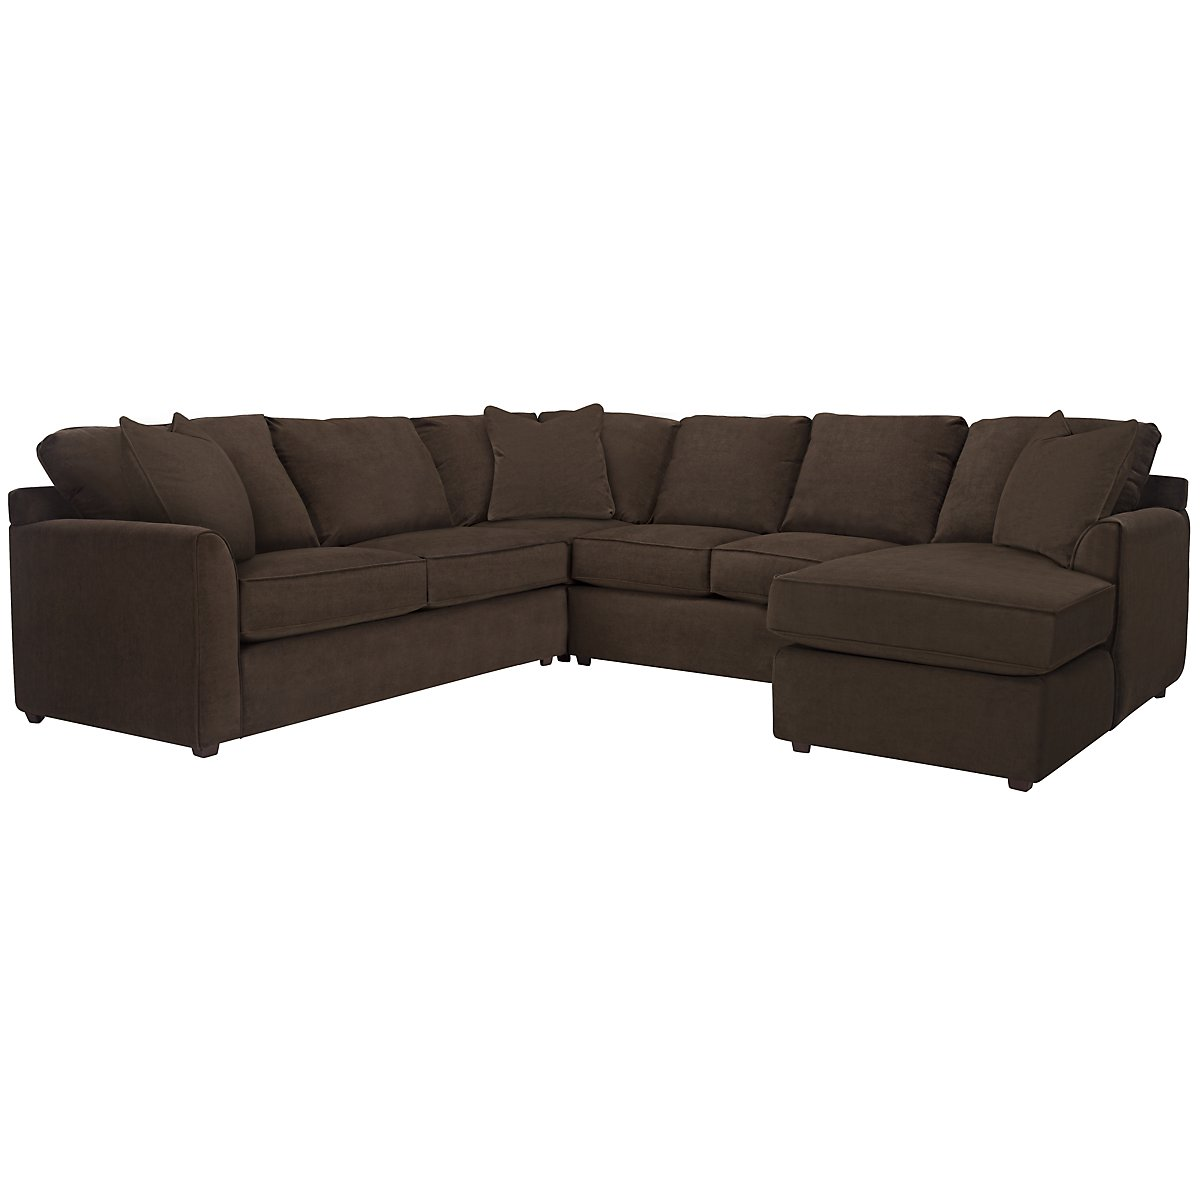 Express3 Dk Brown Microfiber Small Right Chaise Sectional